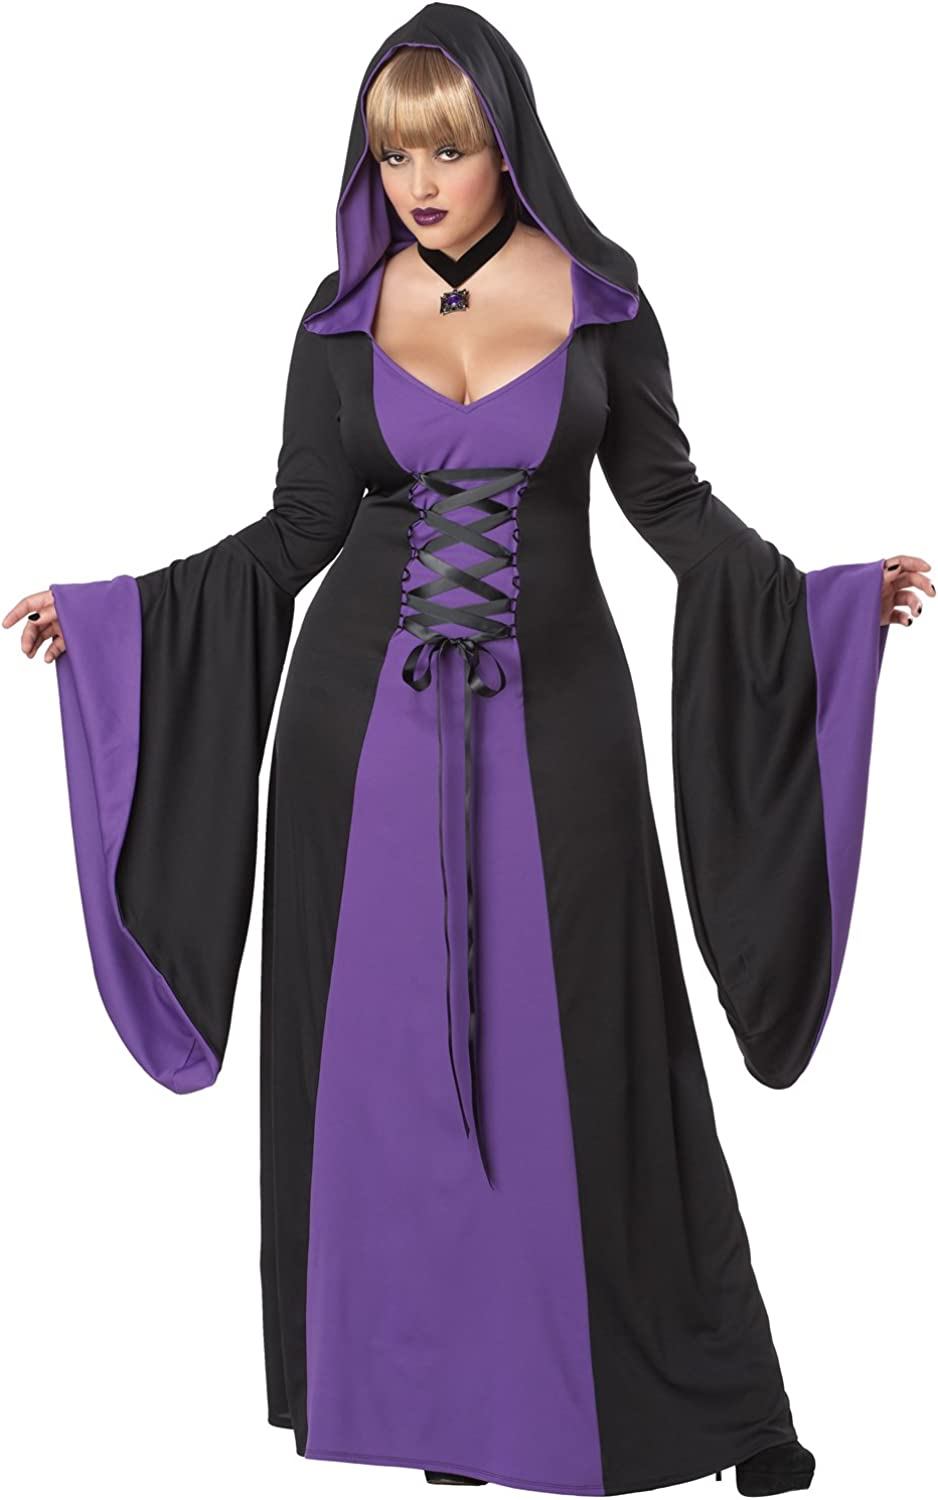 California Costumes Women's Size Deluxe Hooded Robe/Plus